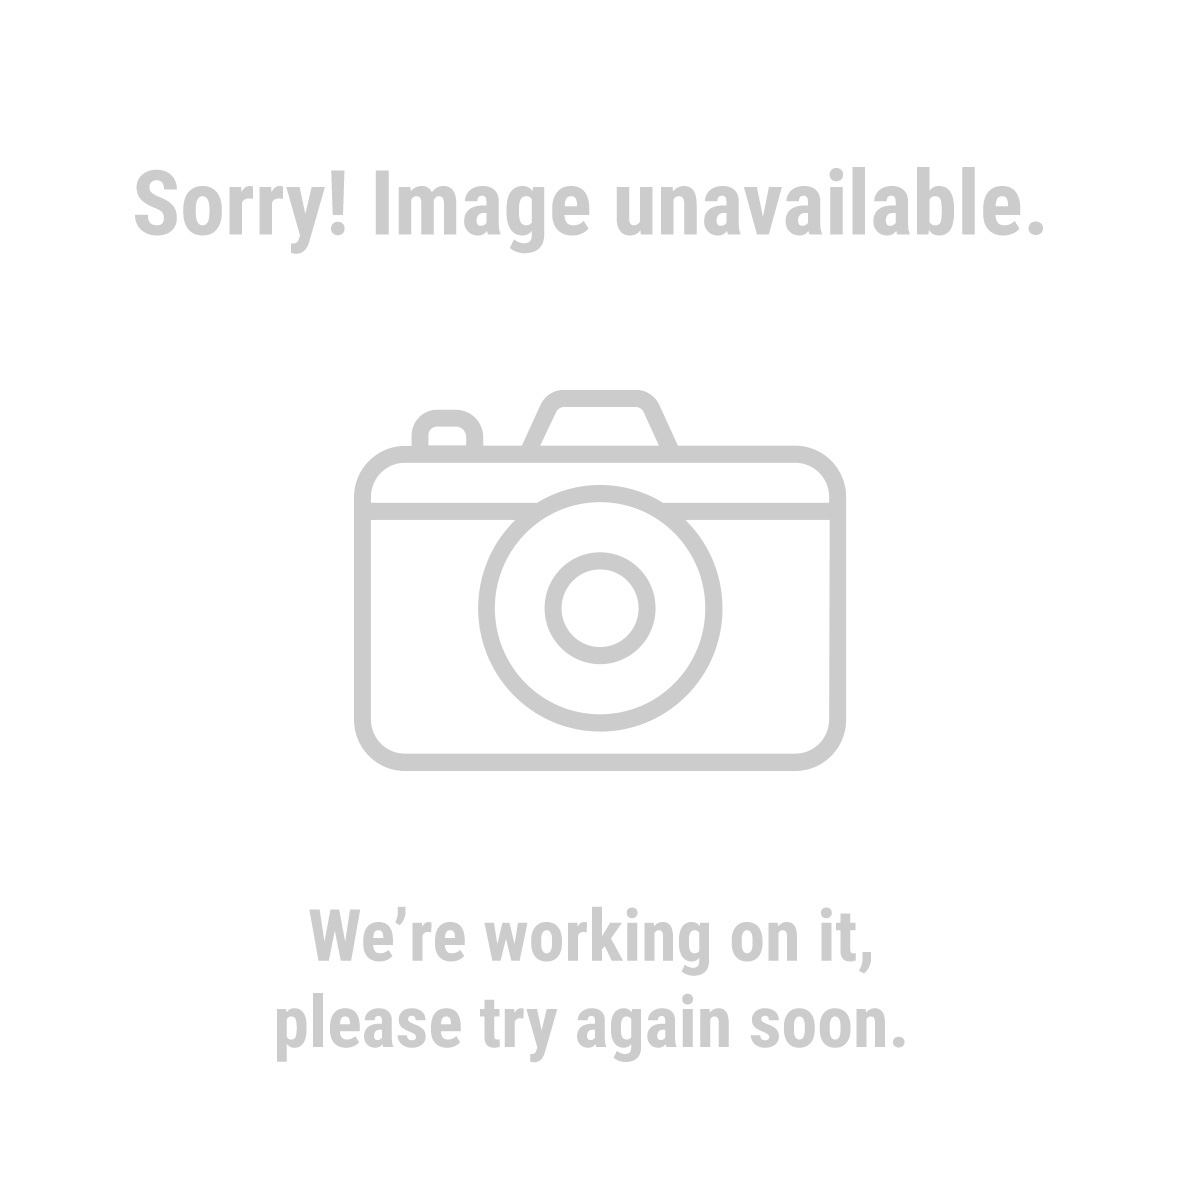 Vanguard 62941 50 ft. x 16 Gauge Indoor/Outdoor Extension Cord